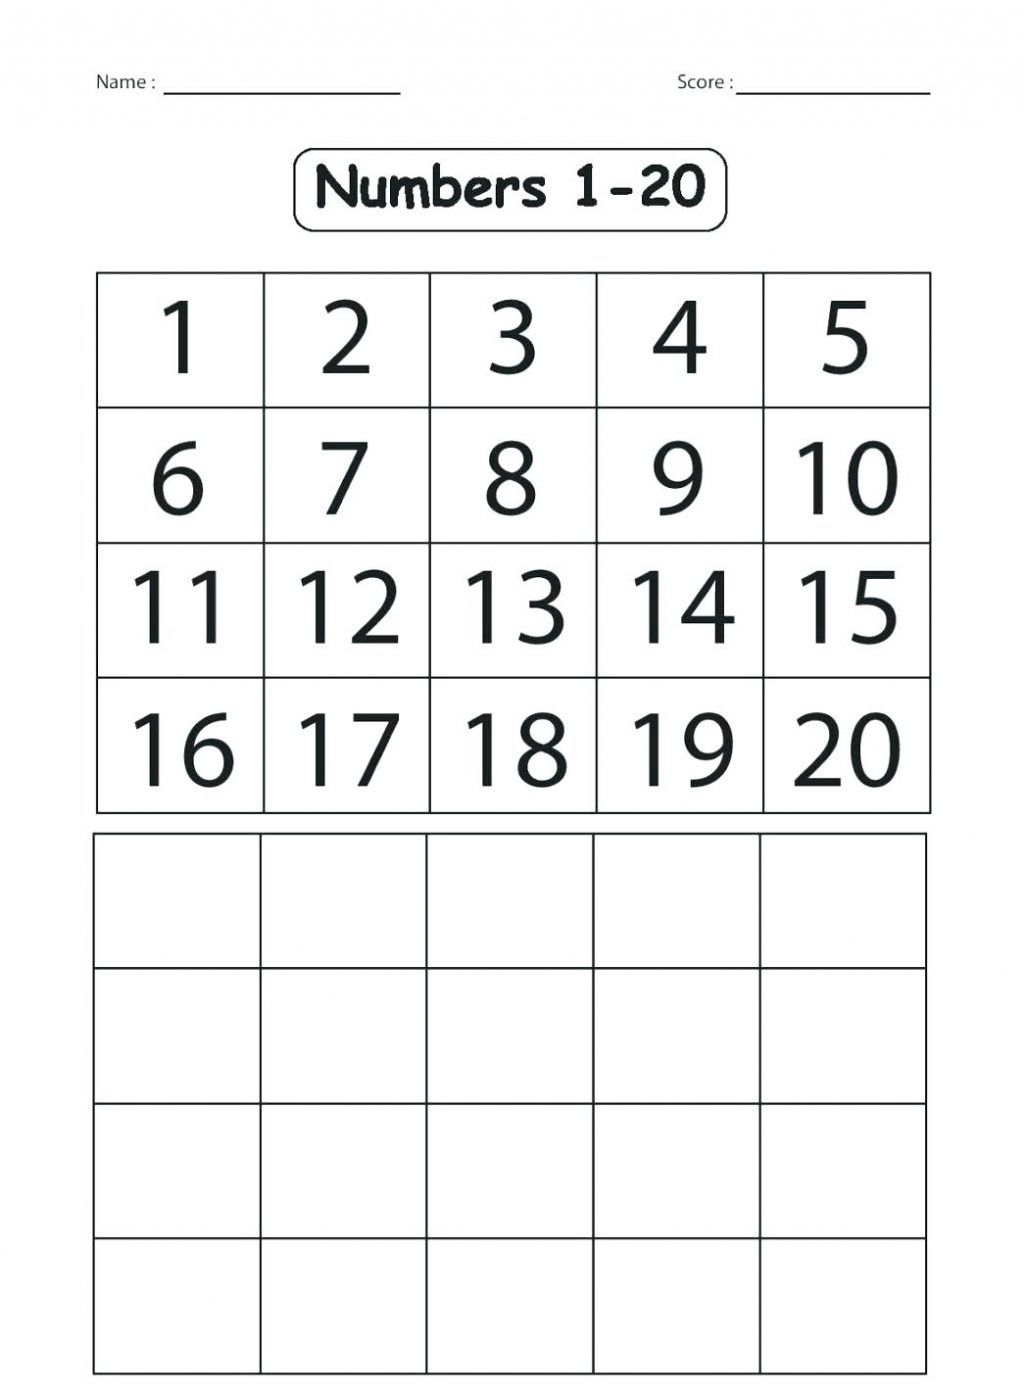 Worksheet Ideas To Math Number Practice Worksheets Tracing Number Worksheets Kindergarten Numbers Kindergarten Number Writing Worksheets